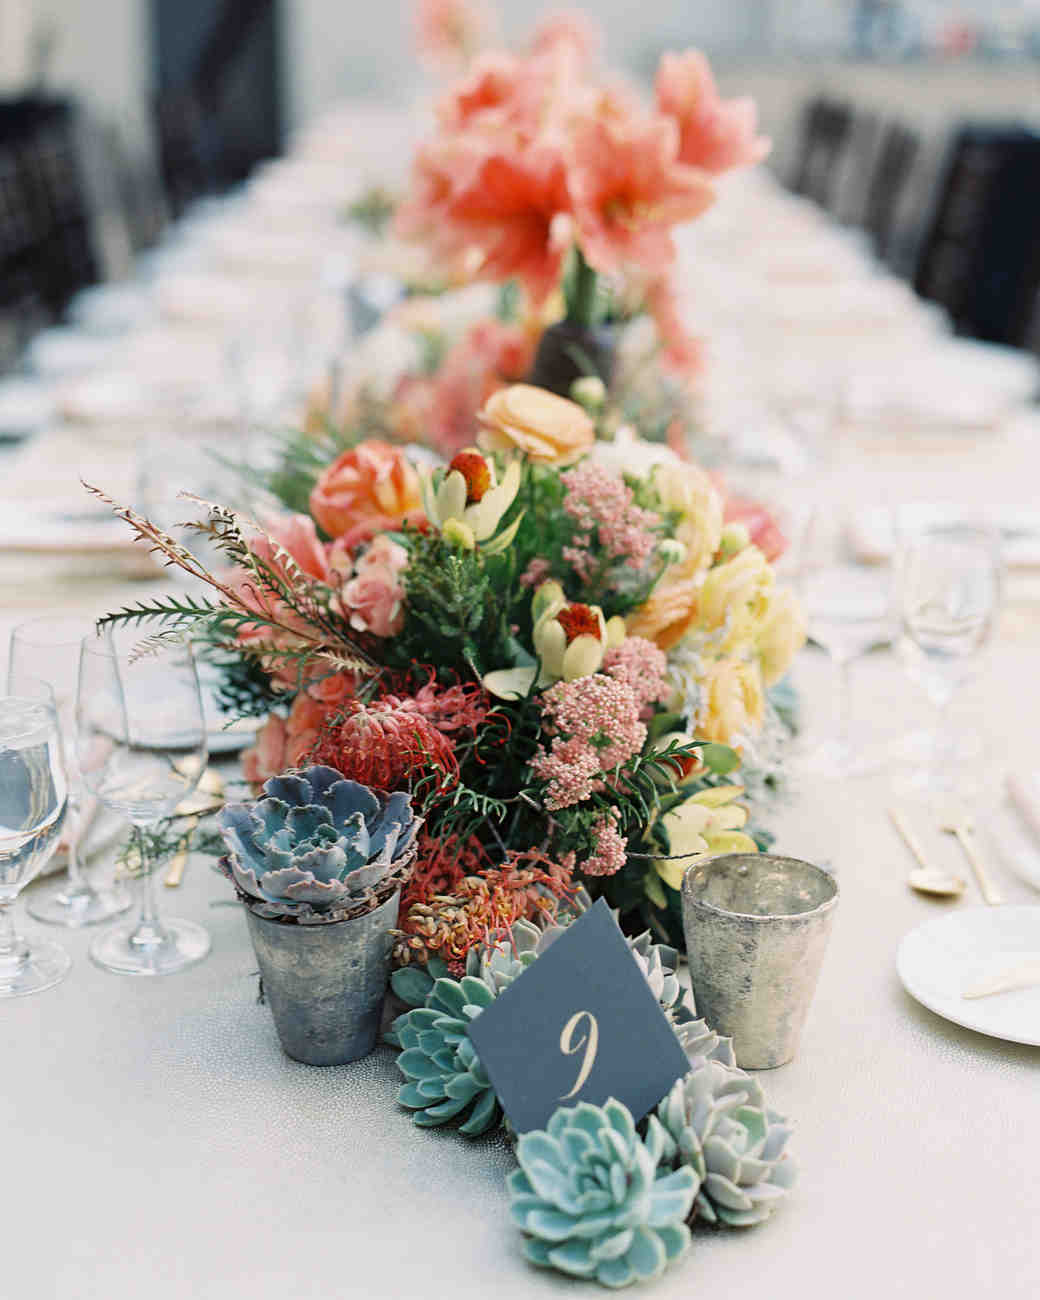 Wedding Tables Ideas: 50 Wedding Centerpiece Ideas We Love